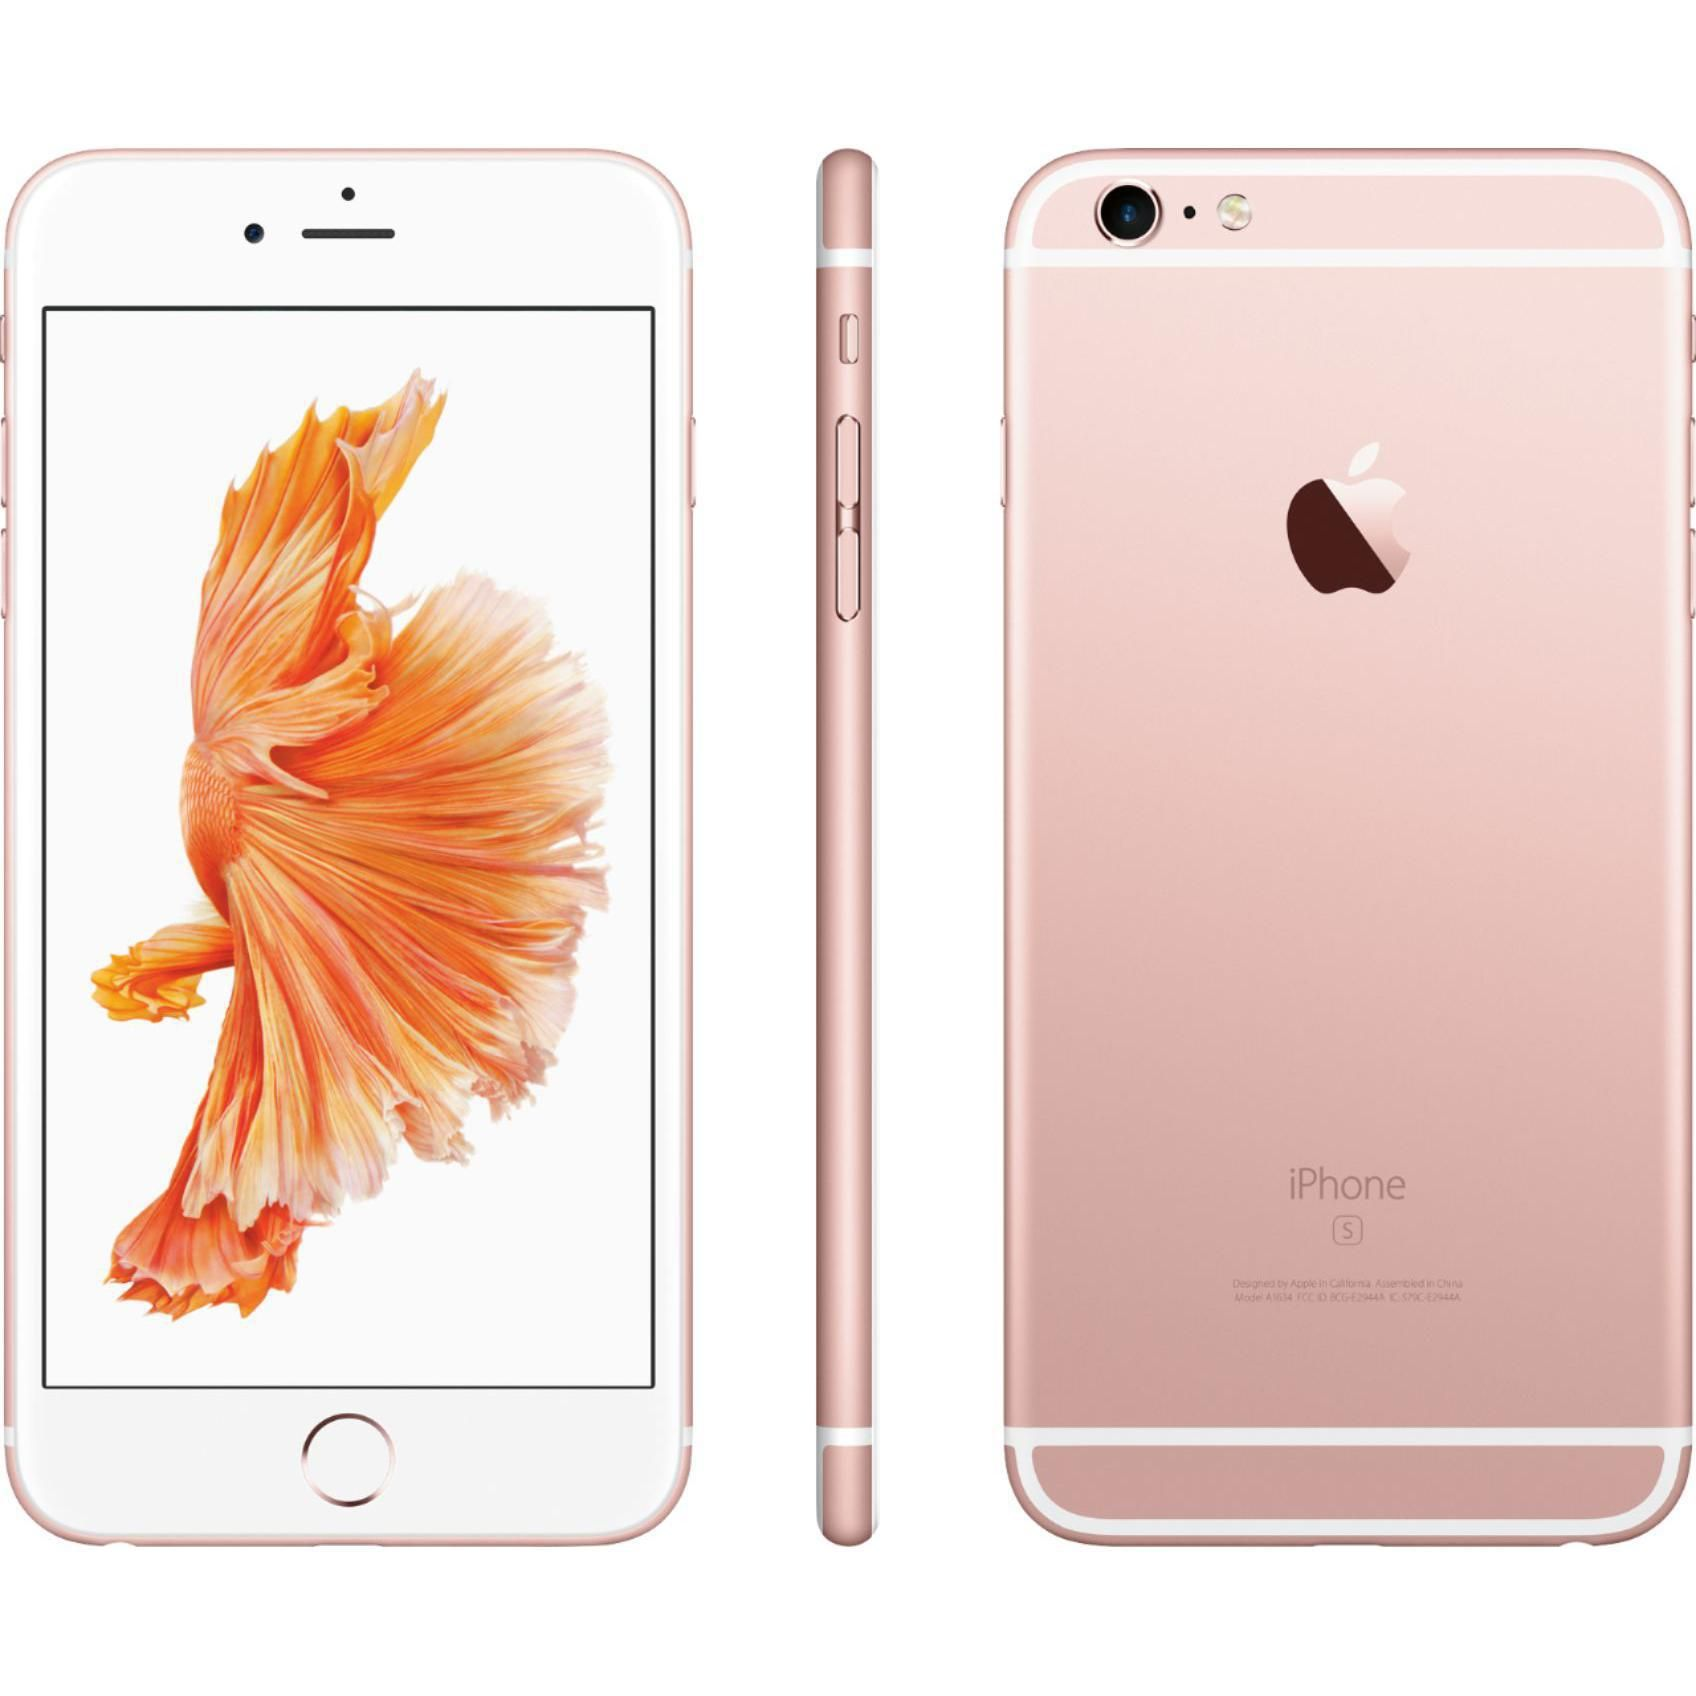 Rose Gold Iphone 6s 32 Gb This Phone Was Bought Brand New Only Ever Used With Metropcs Everything Else Should Be U Iphone Iphone 6s Rose Gold Rose Gold Iphone